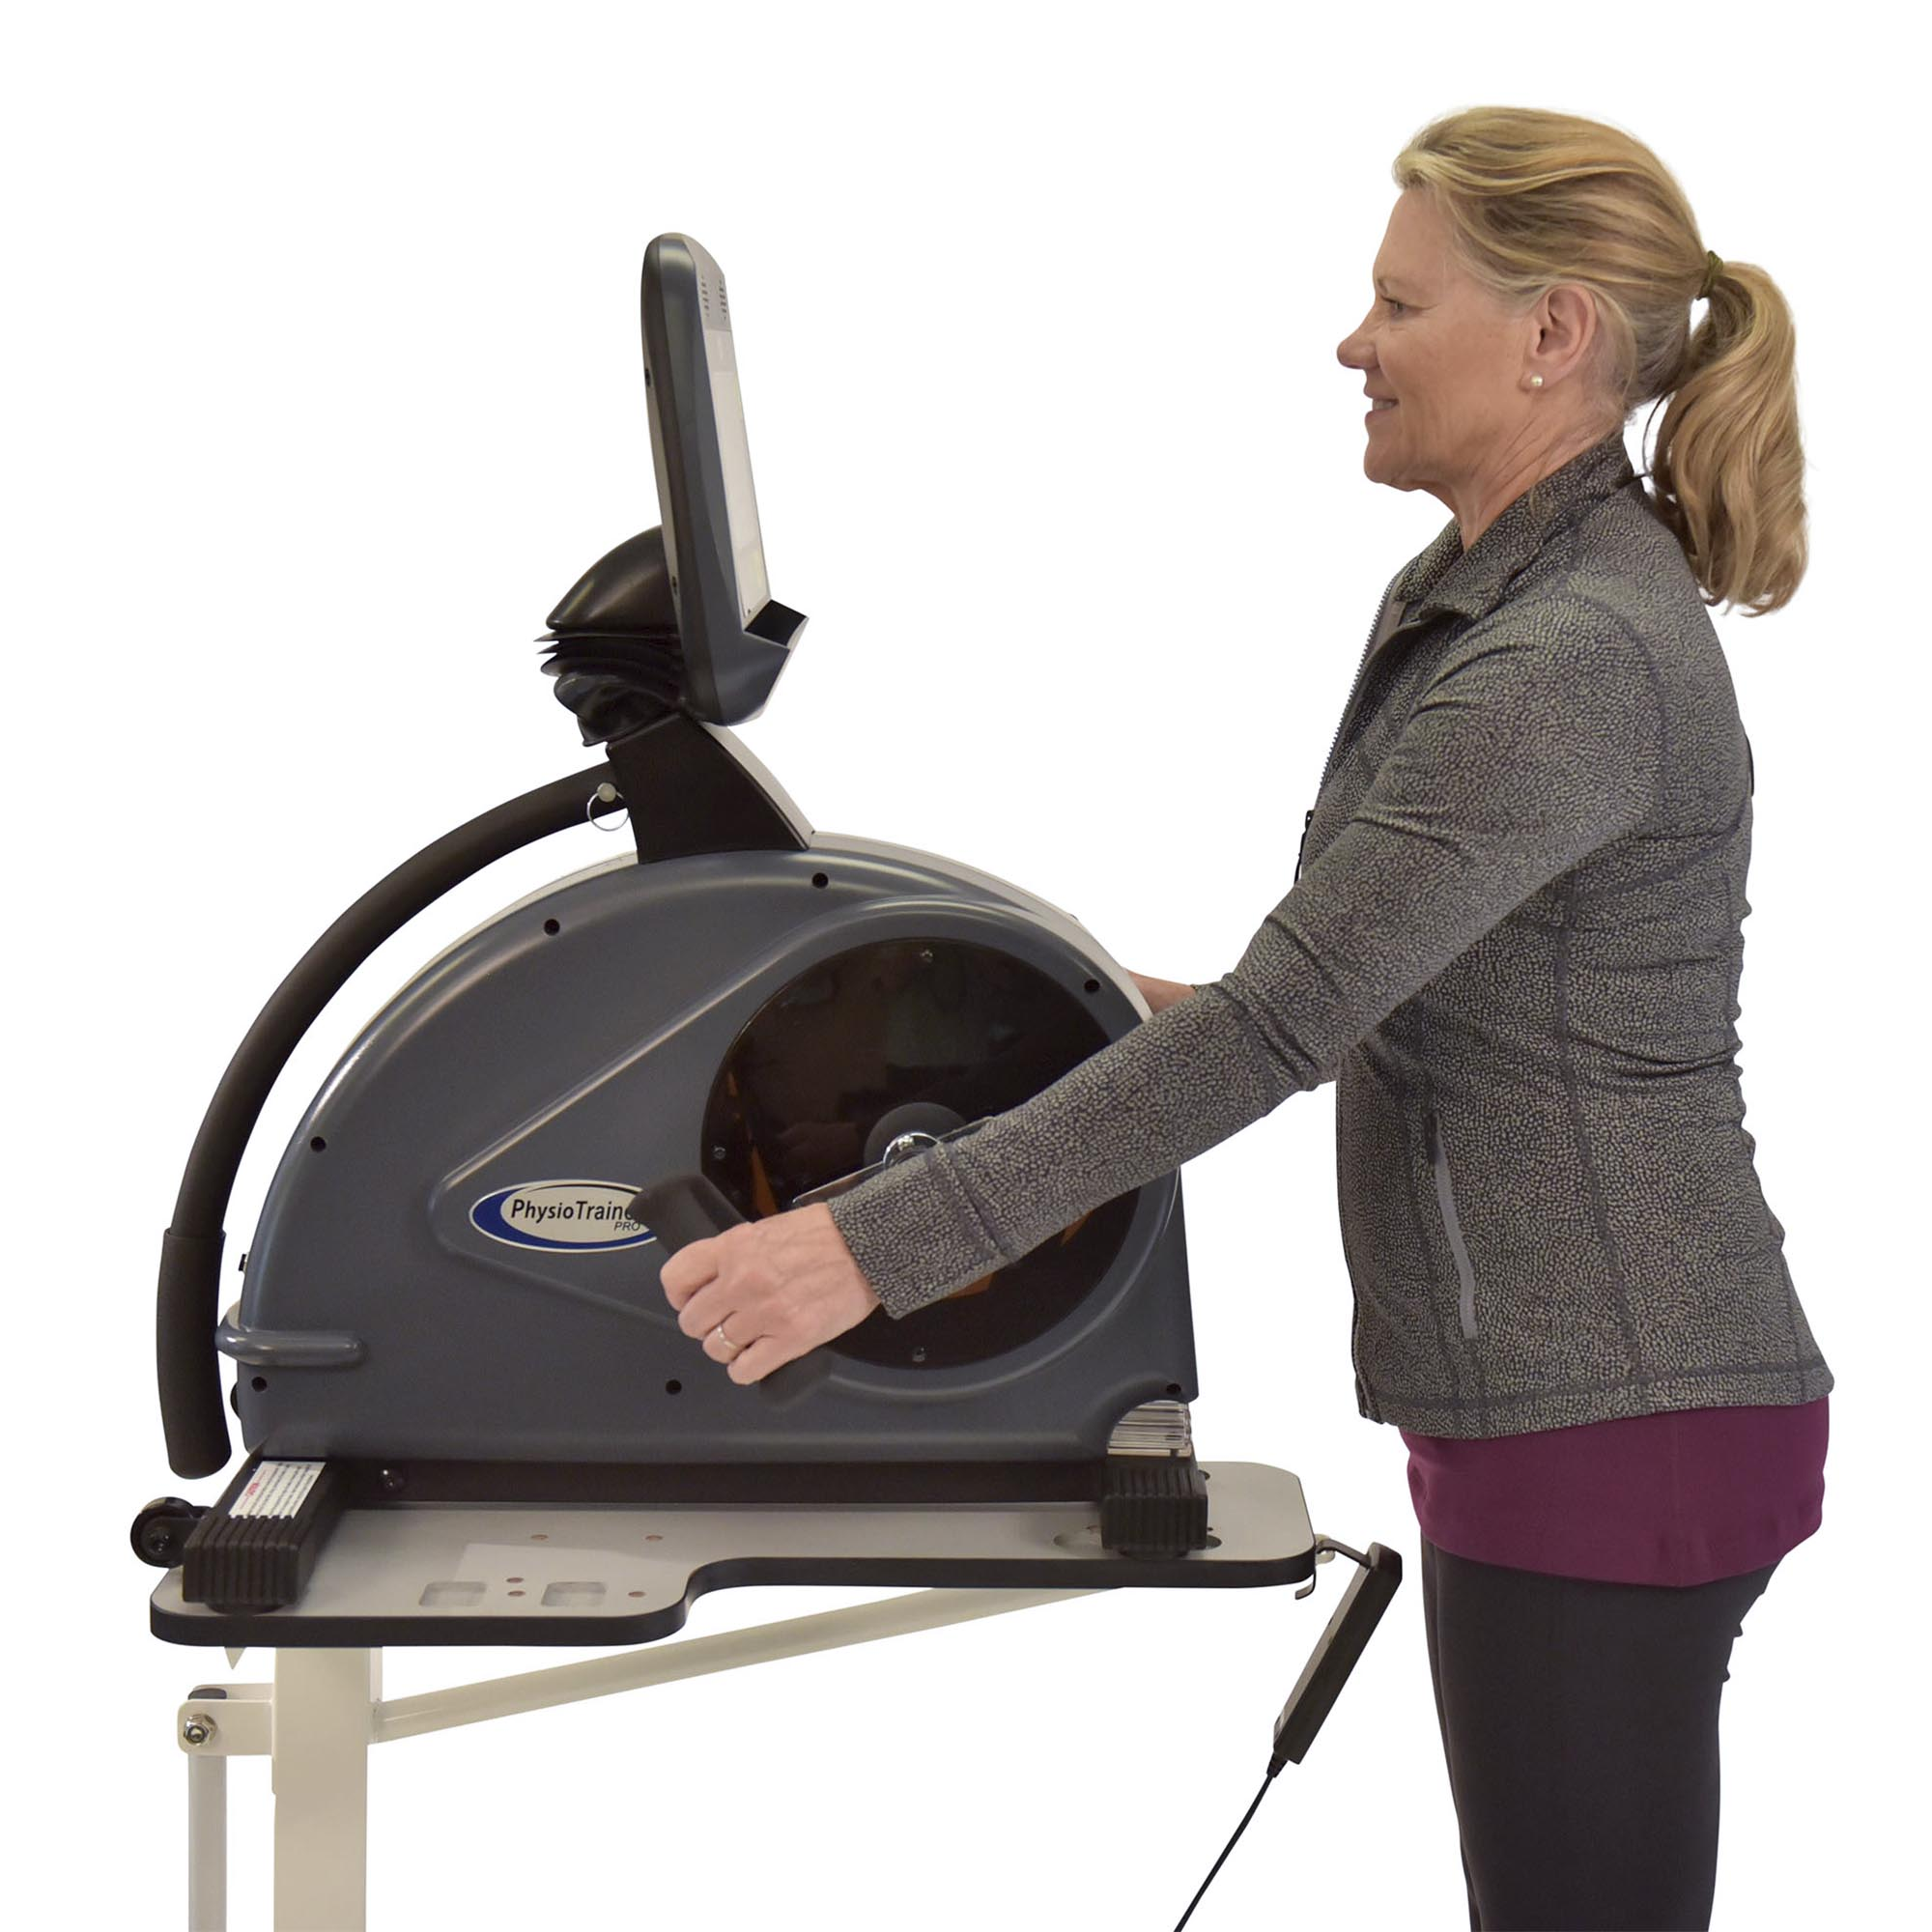 PhysioTrainer PRO Ellectronically Controlled Upper Body Ergometer